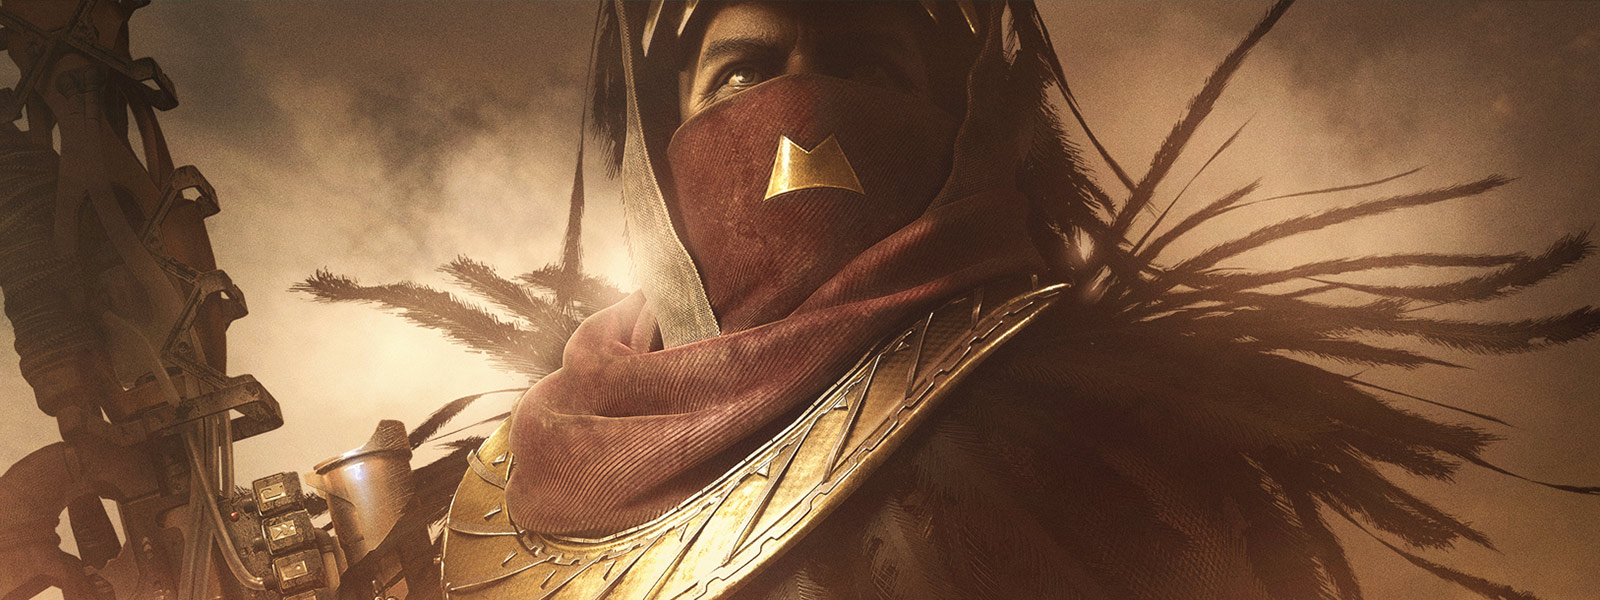 Front view of Osiris holding a gun in his right hand